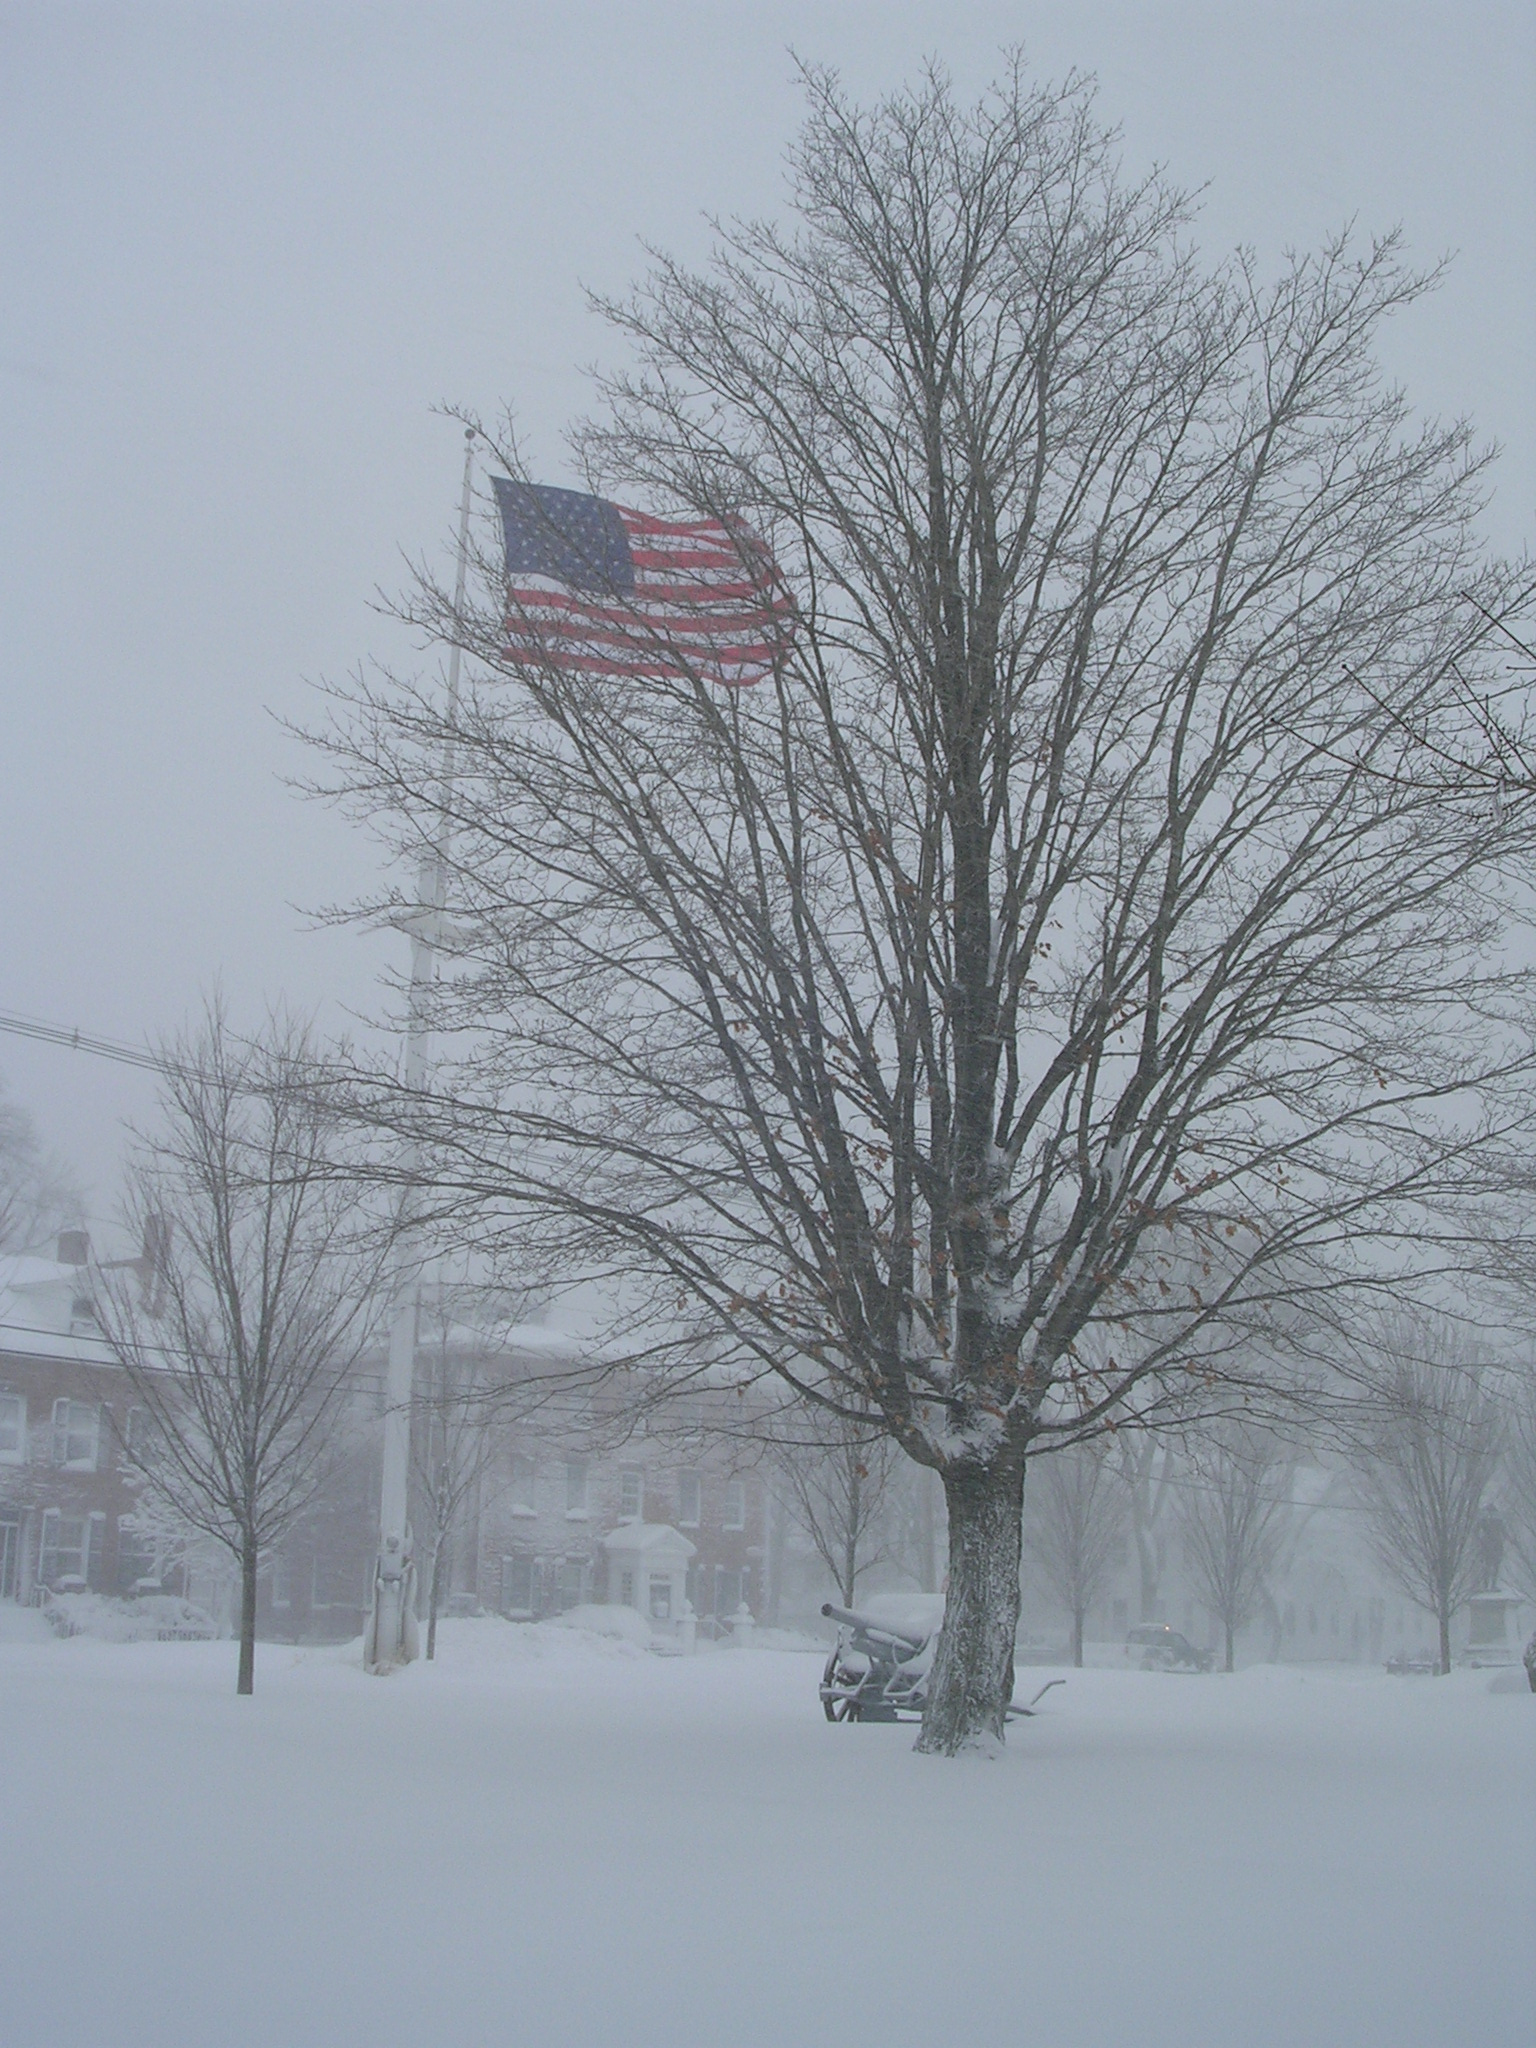 Valley Forge? No, just the flag and monument on Bartlett Mall